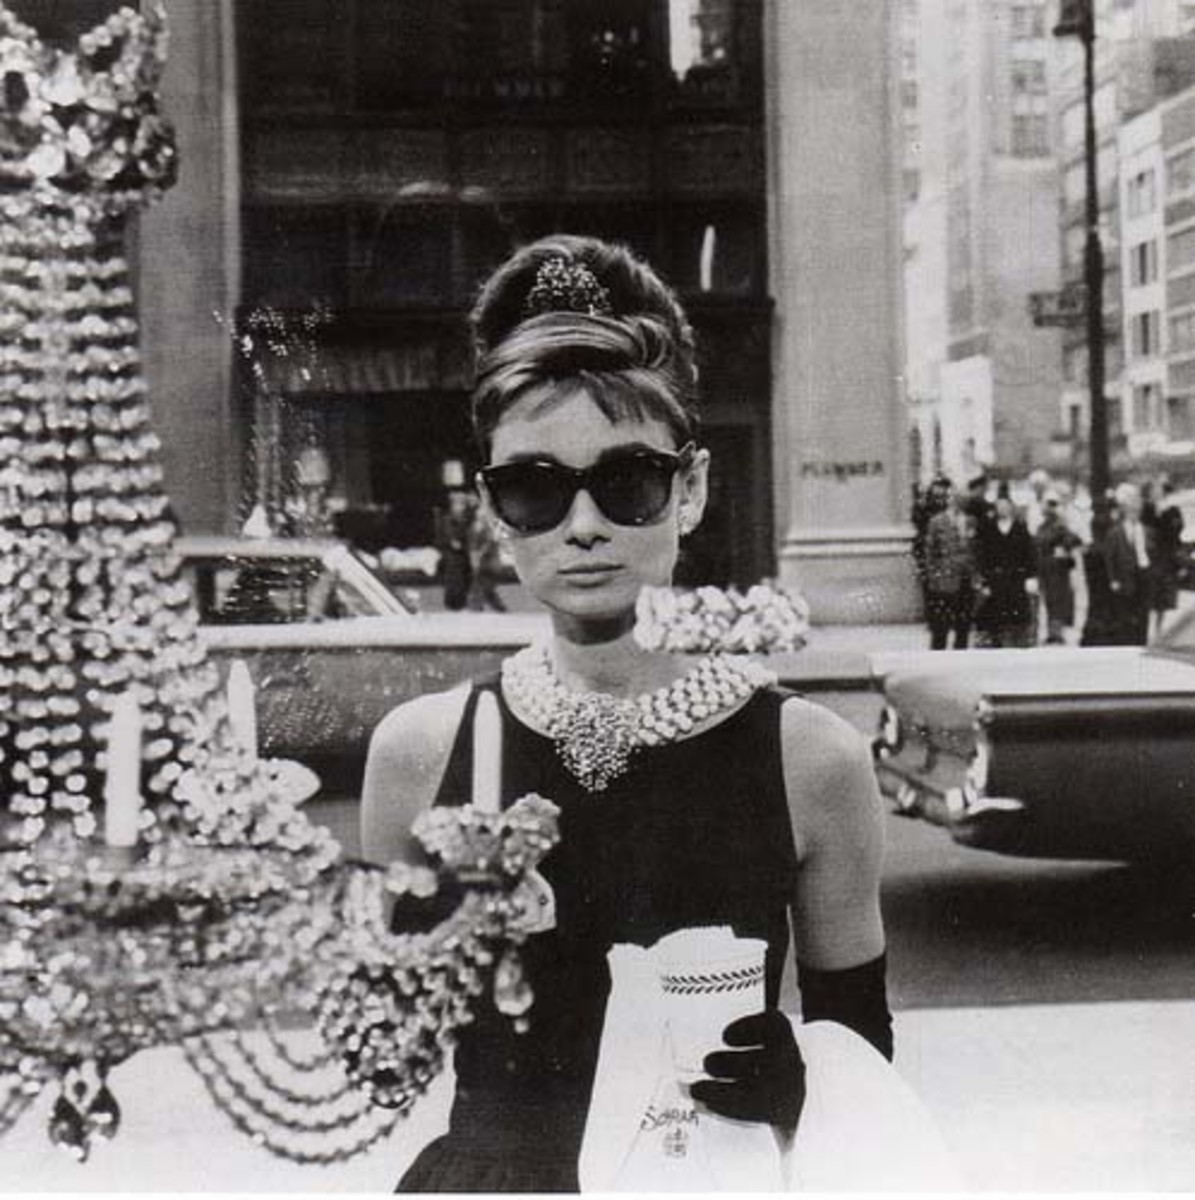 Audrey Hepburn buzzing around in Breakfast at Tiffany's